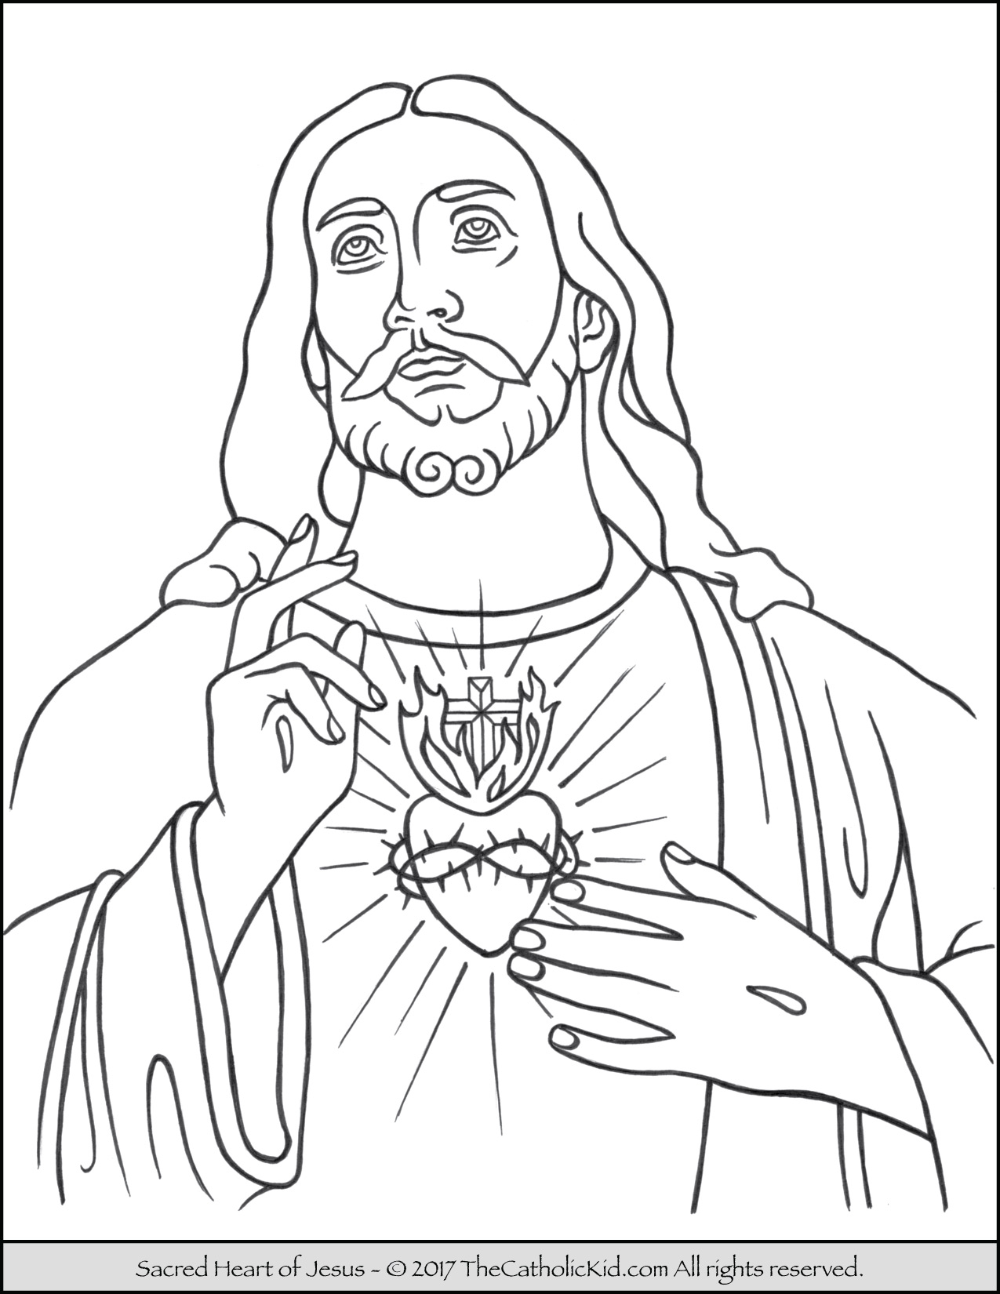 Sacred Heart Of Jesus Coloring Page Thecatholickid Com Jesus Coloring Pages Catholic Coloring Bible Coloring Pages